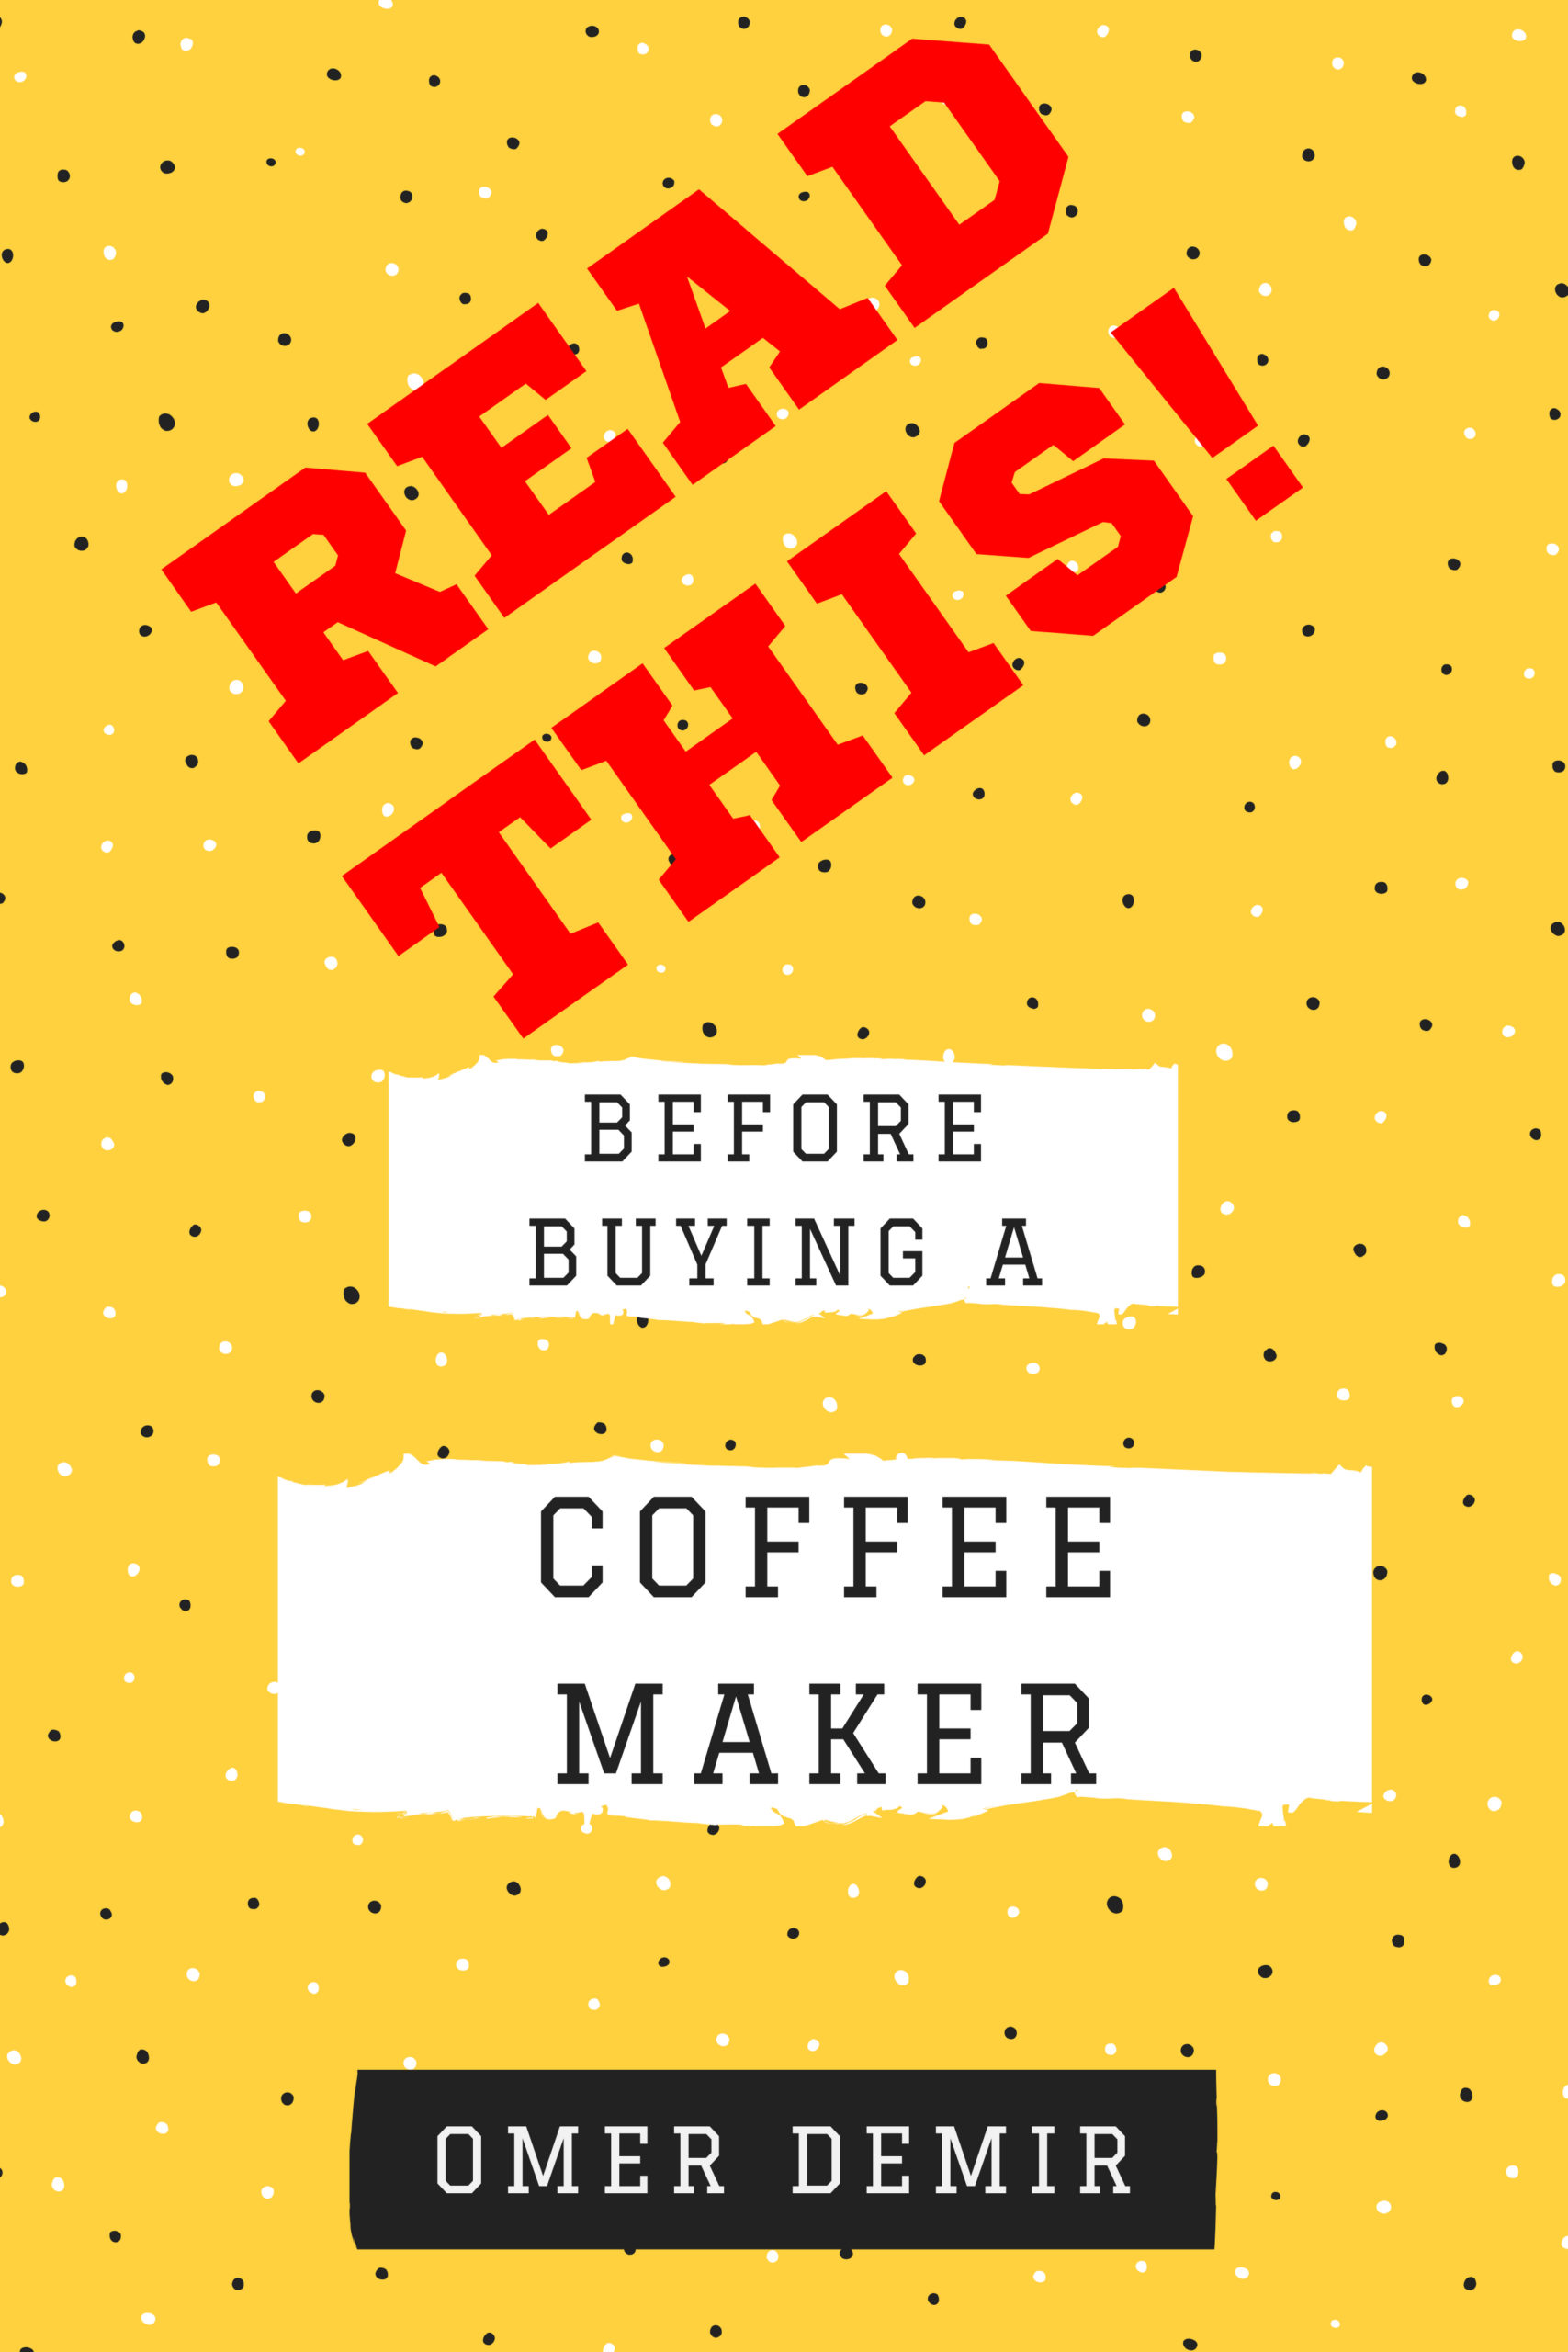 Read This Before Buying A Coffee Maker | M O K A P O T A